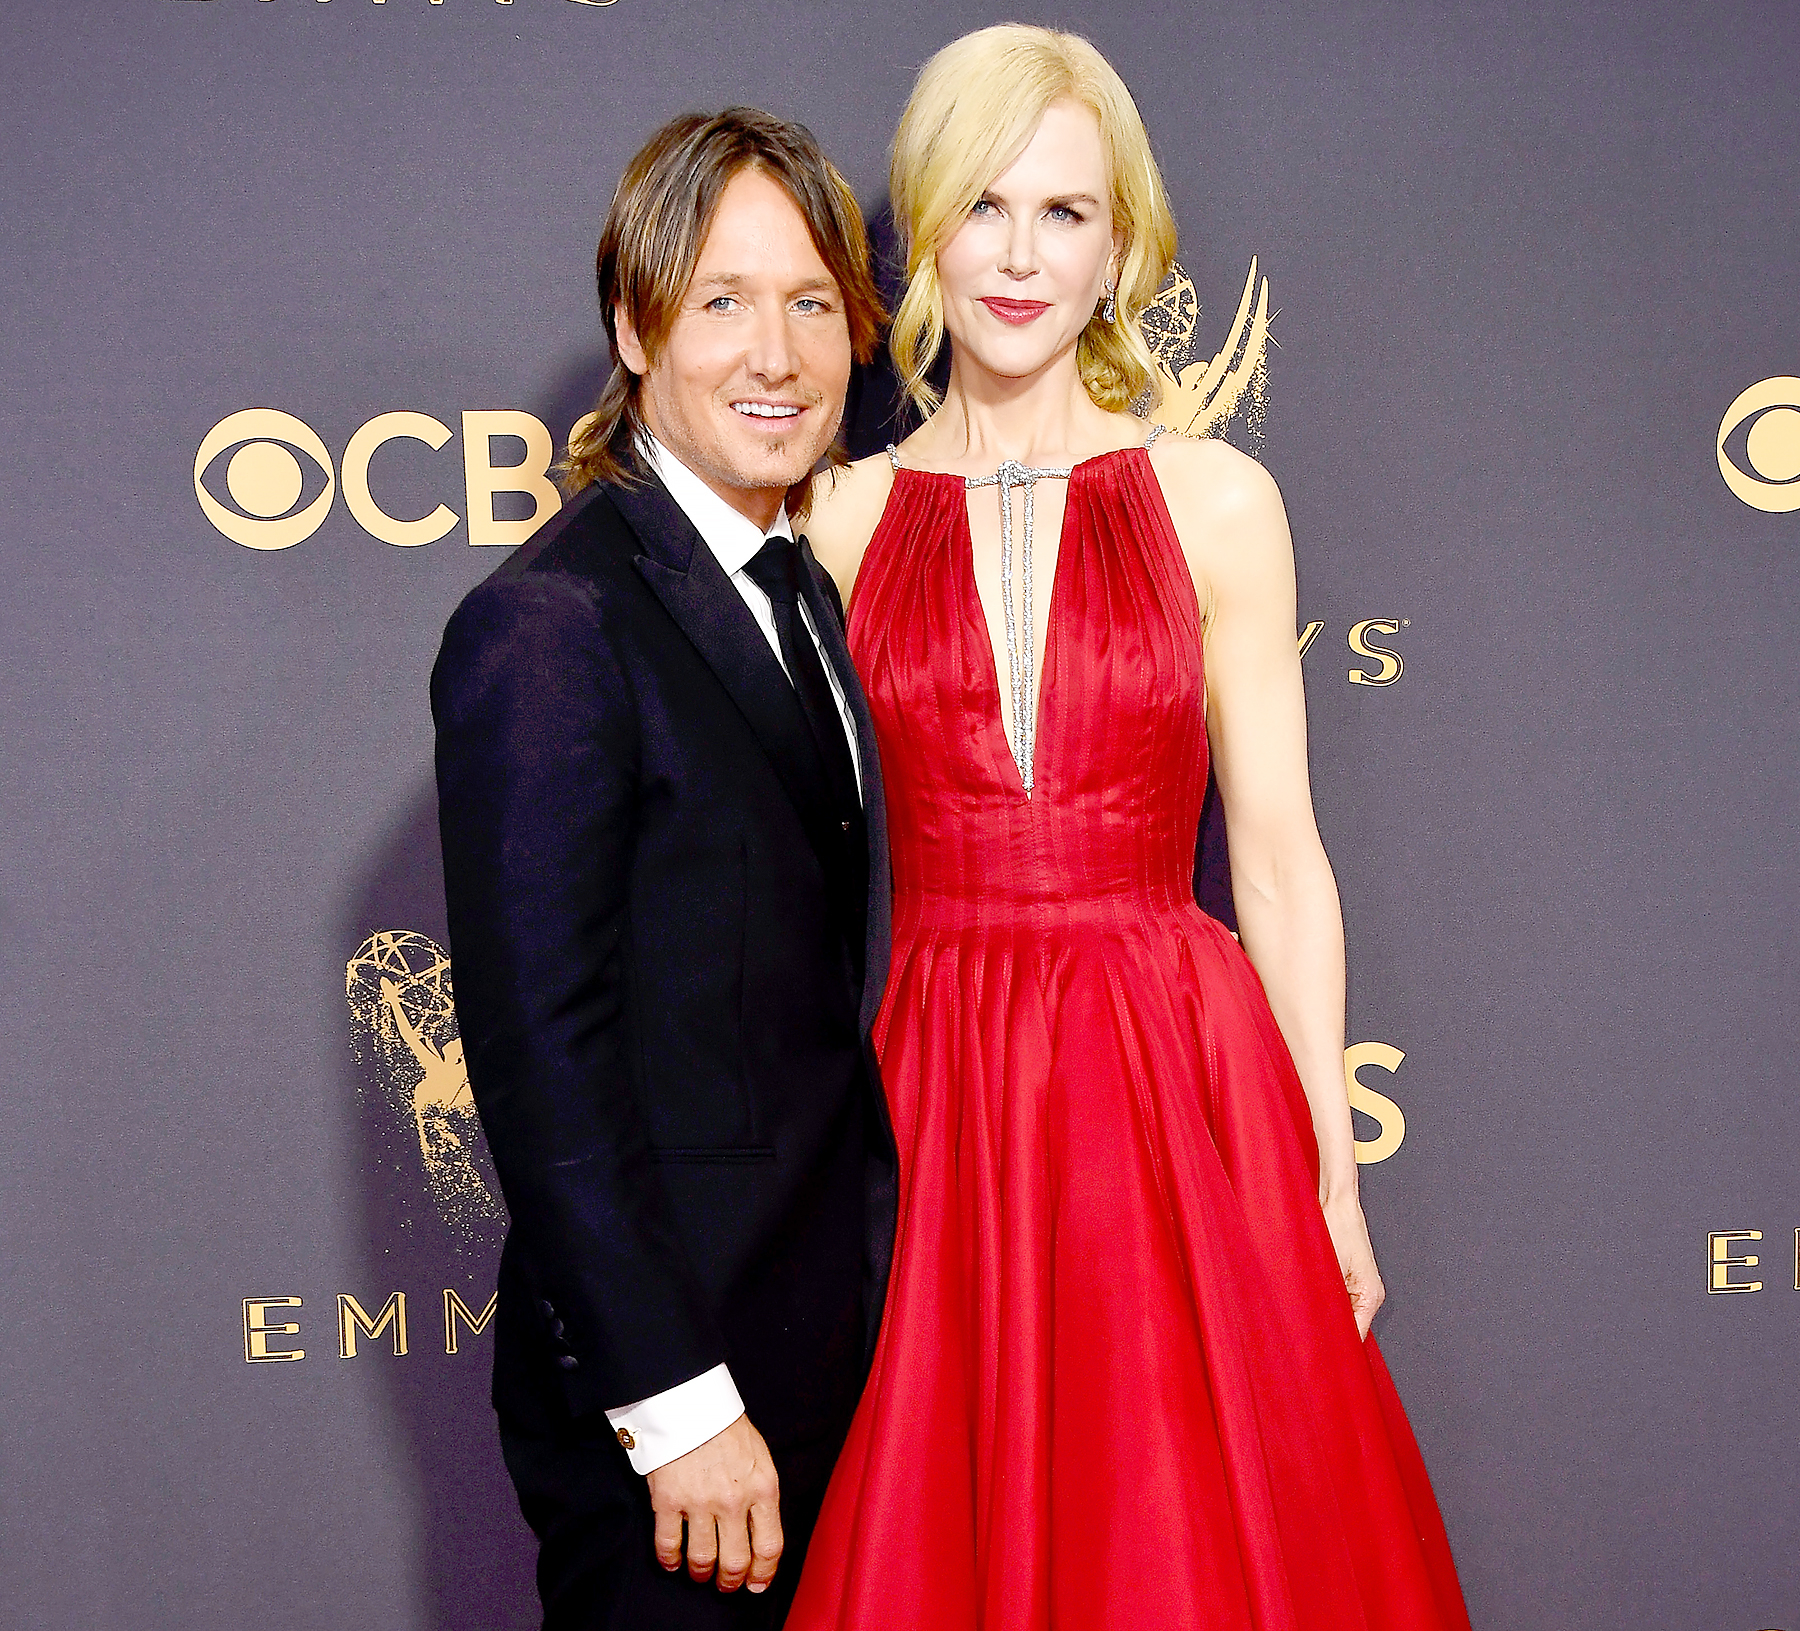 Keith Urban and Nicole Kidman attend the 69th Annual Primetime Emmy Awards at Microsoft Theater on September 17, 2017 in Los Angeles, California.